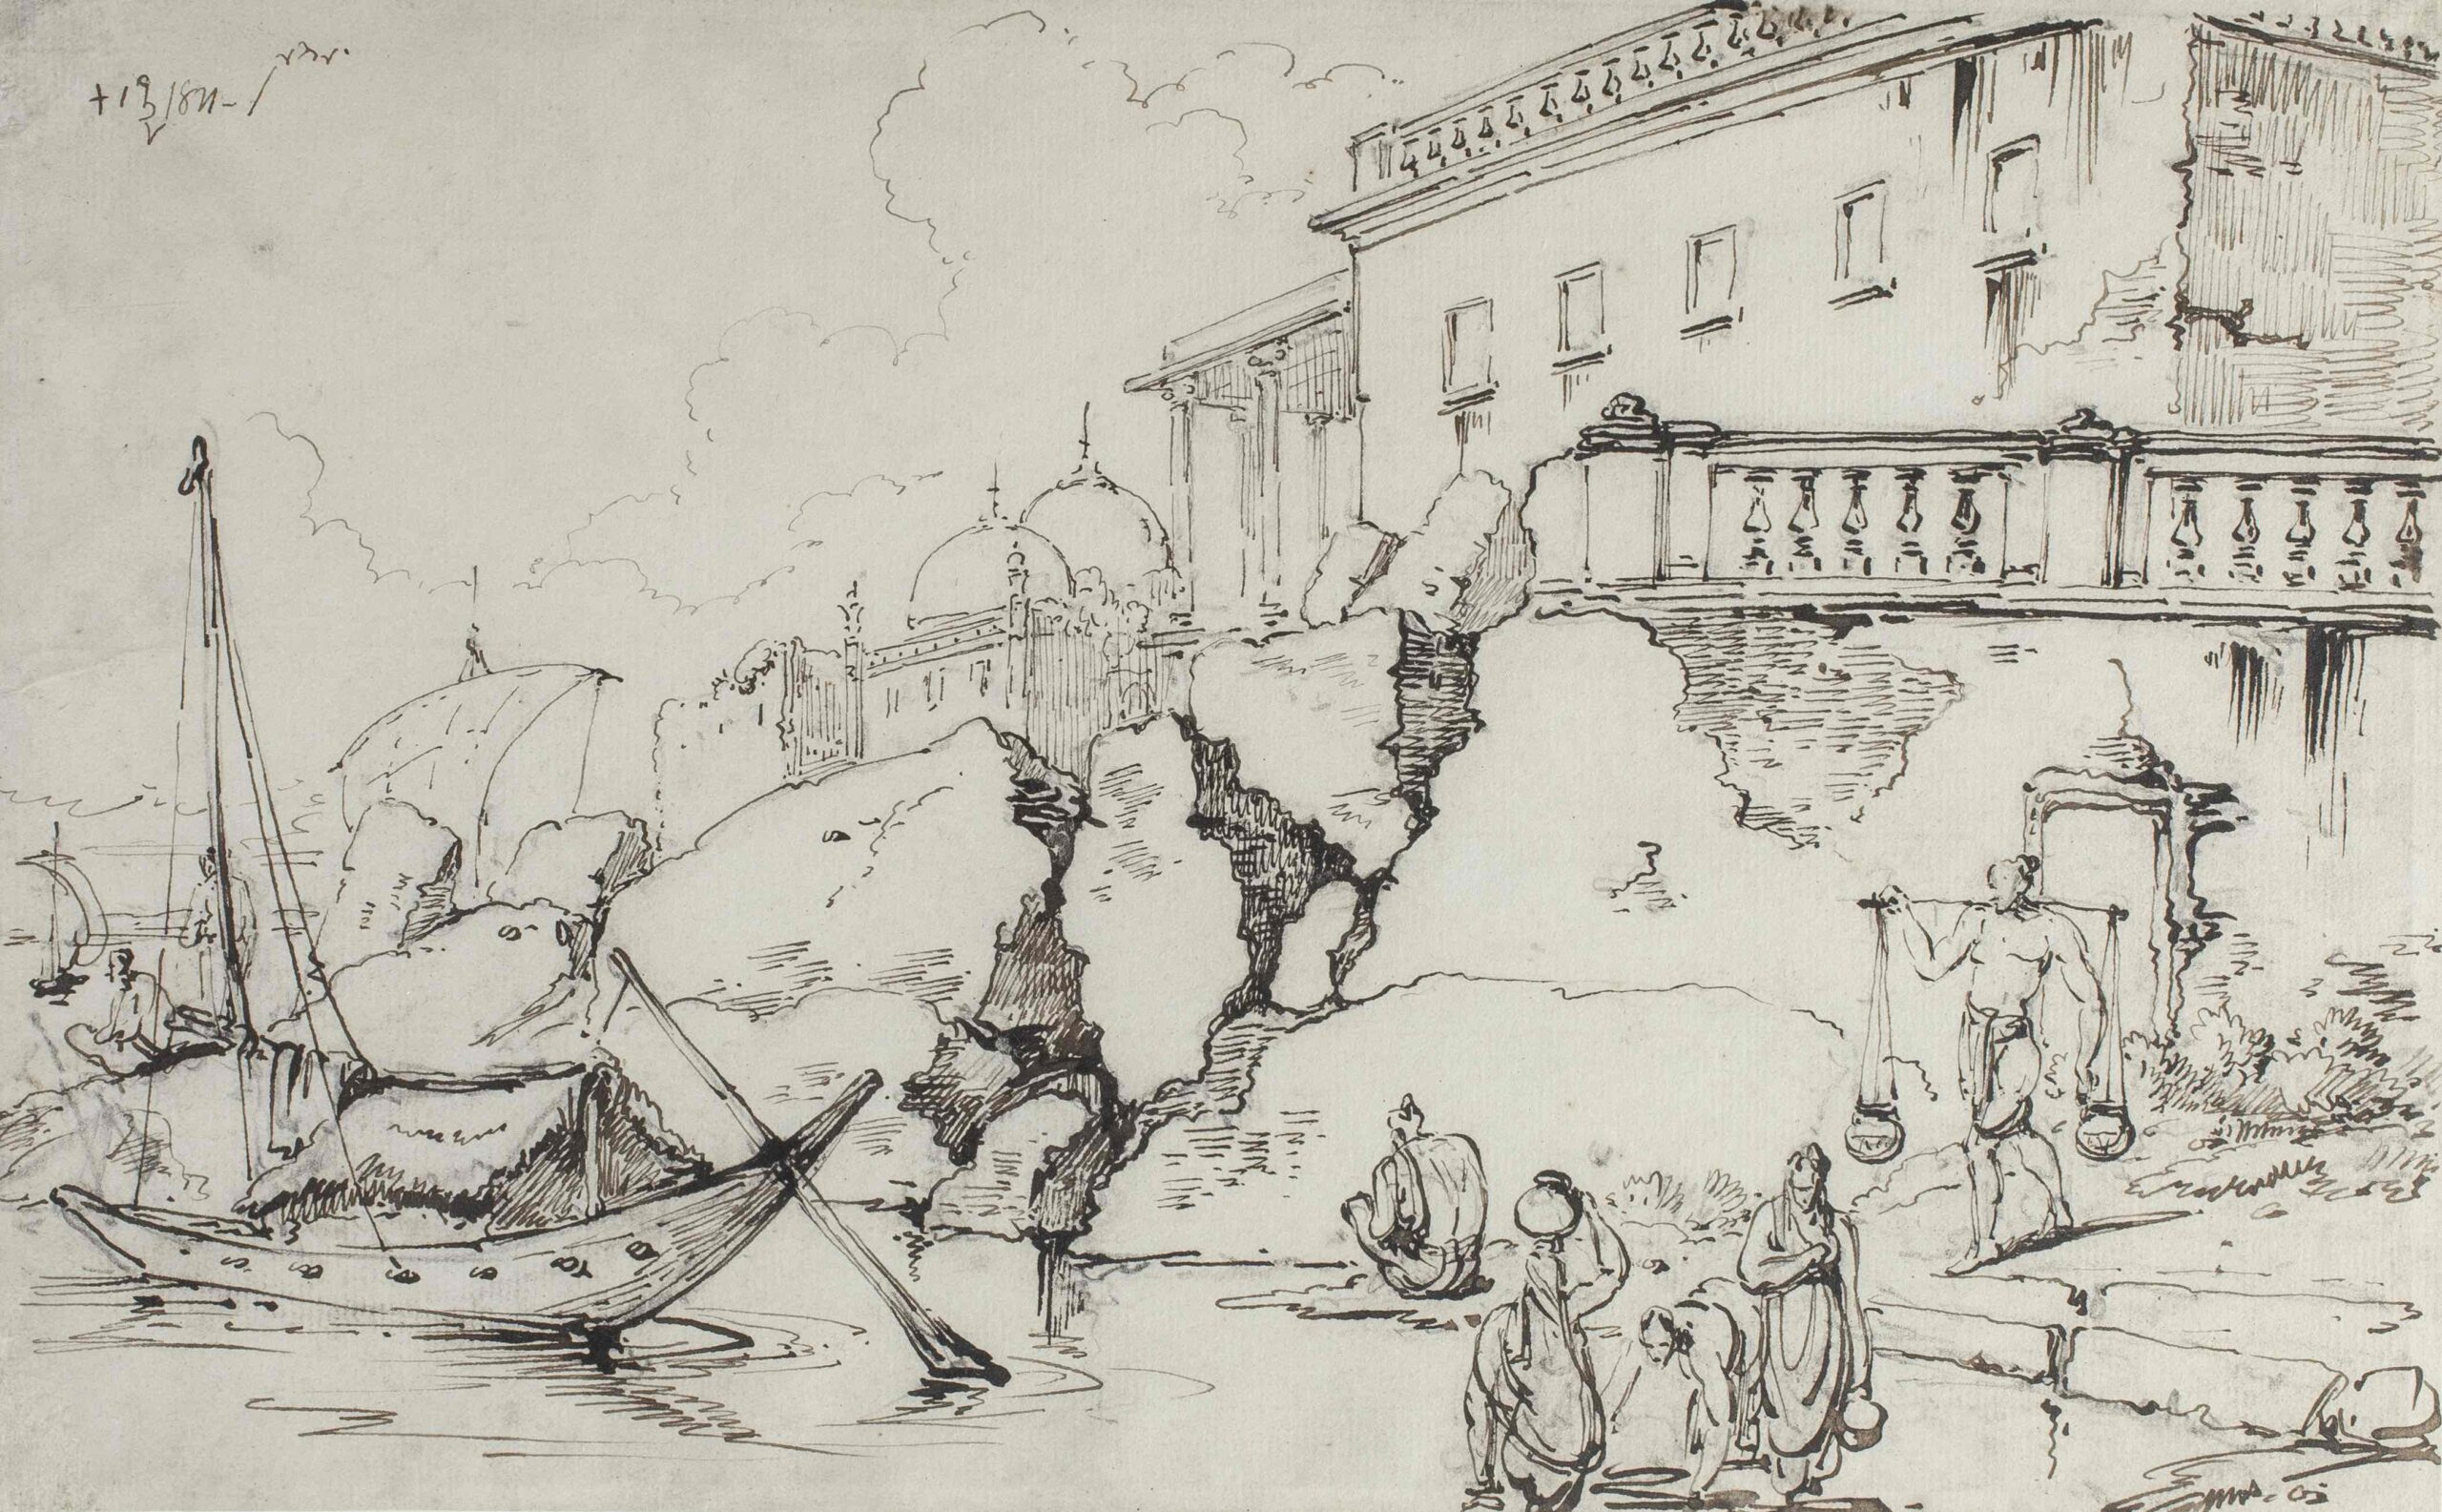 George Chinnery (1774 - 1852) Buildings along the river Hugli at Serampur (Serampore) Pencil, pen and ink, 7 3/4 x 12 1/4 in (19.7 x 31 cm)